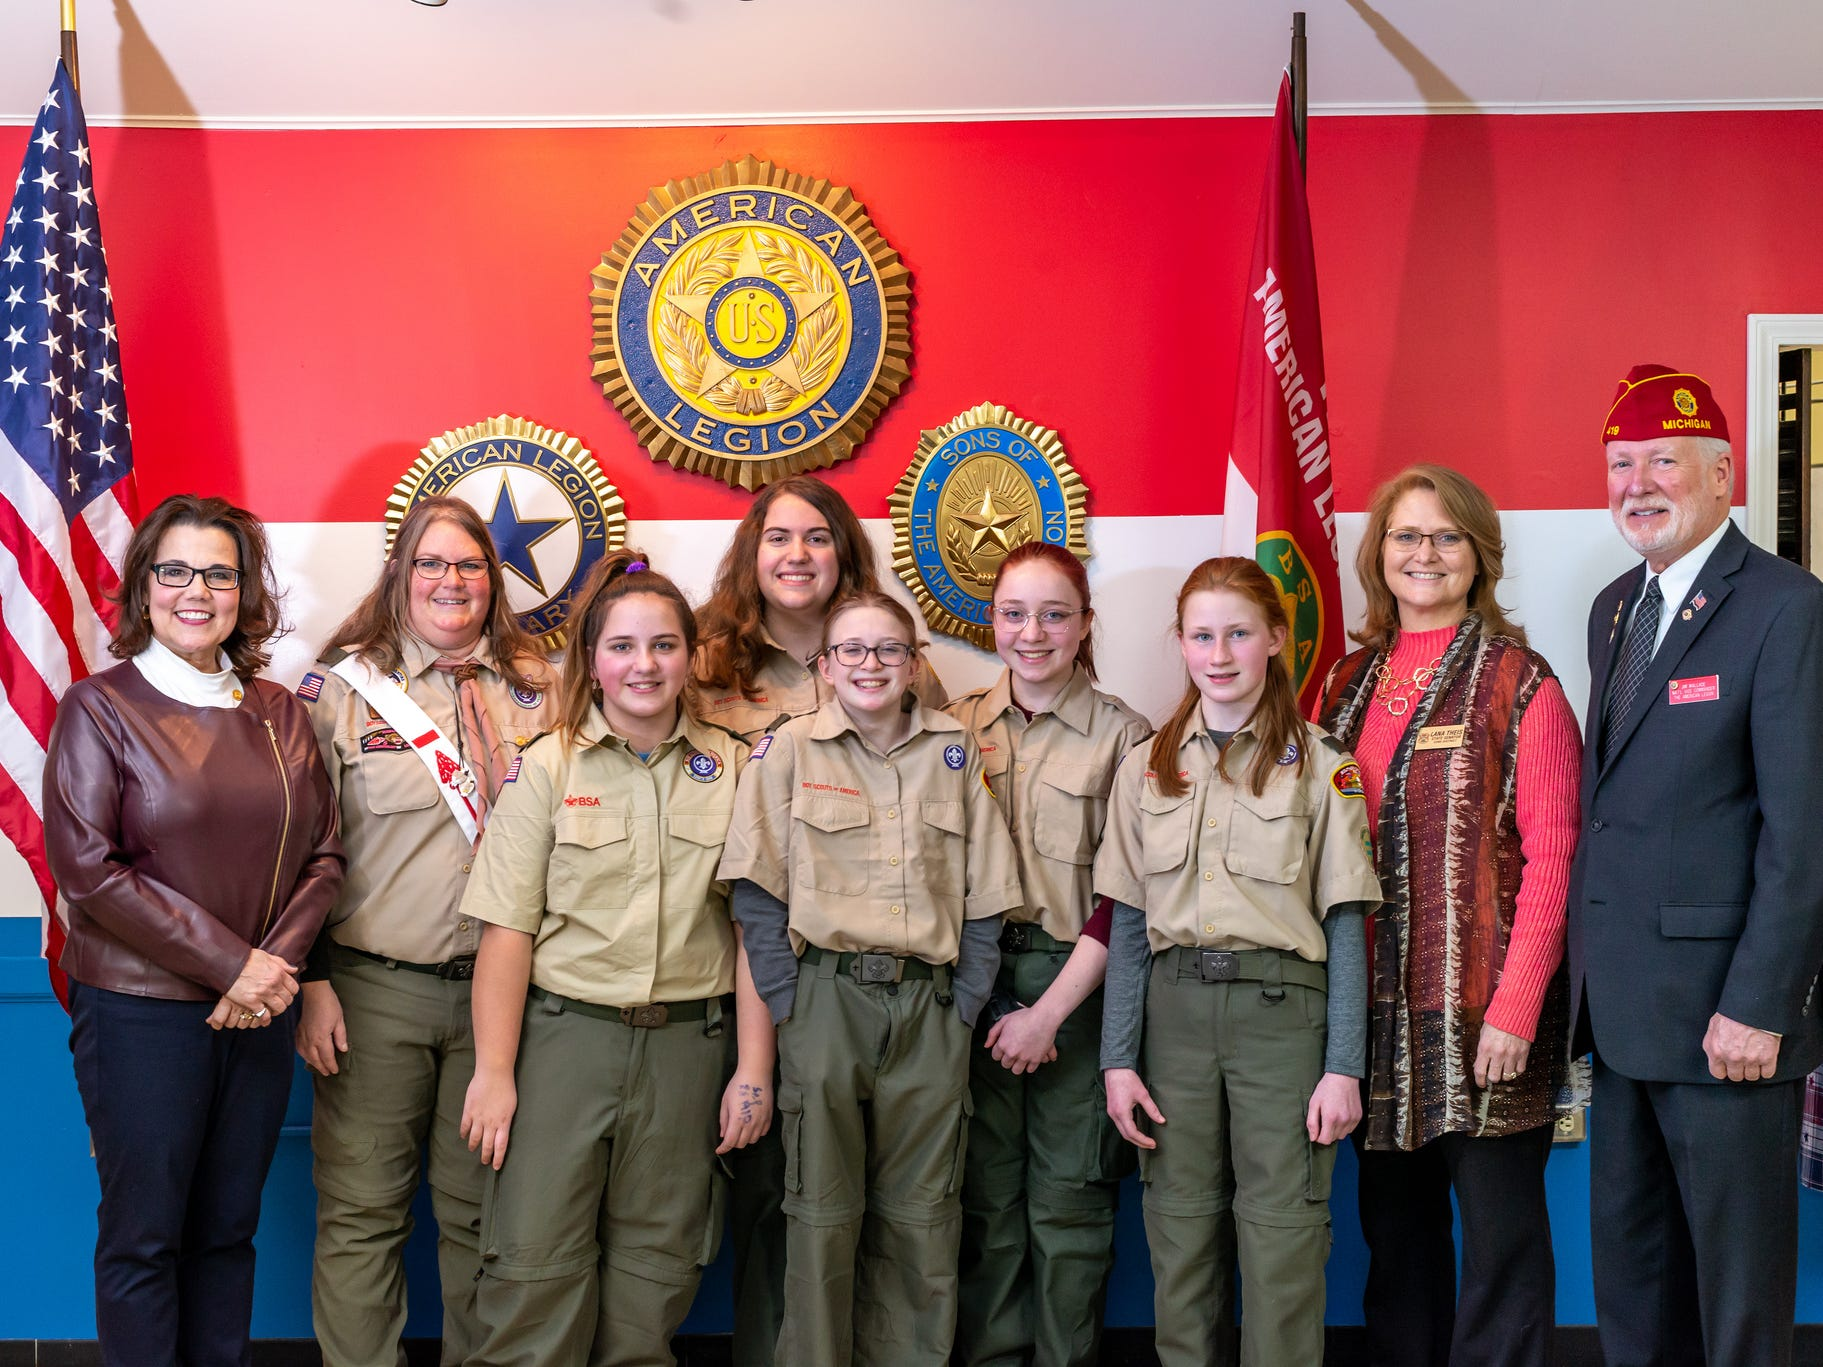 Newly-founded Troop 310 with state Rep. Ann Bollin (left), Sen. Lana Theis (right), and American Legion Representative James Wallace. The troop had its first meeting Monday, Feb. 18, 2019.